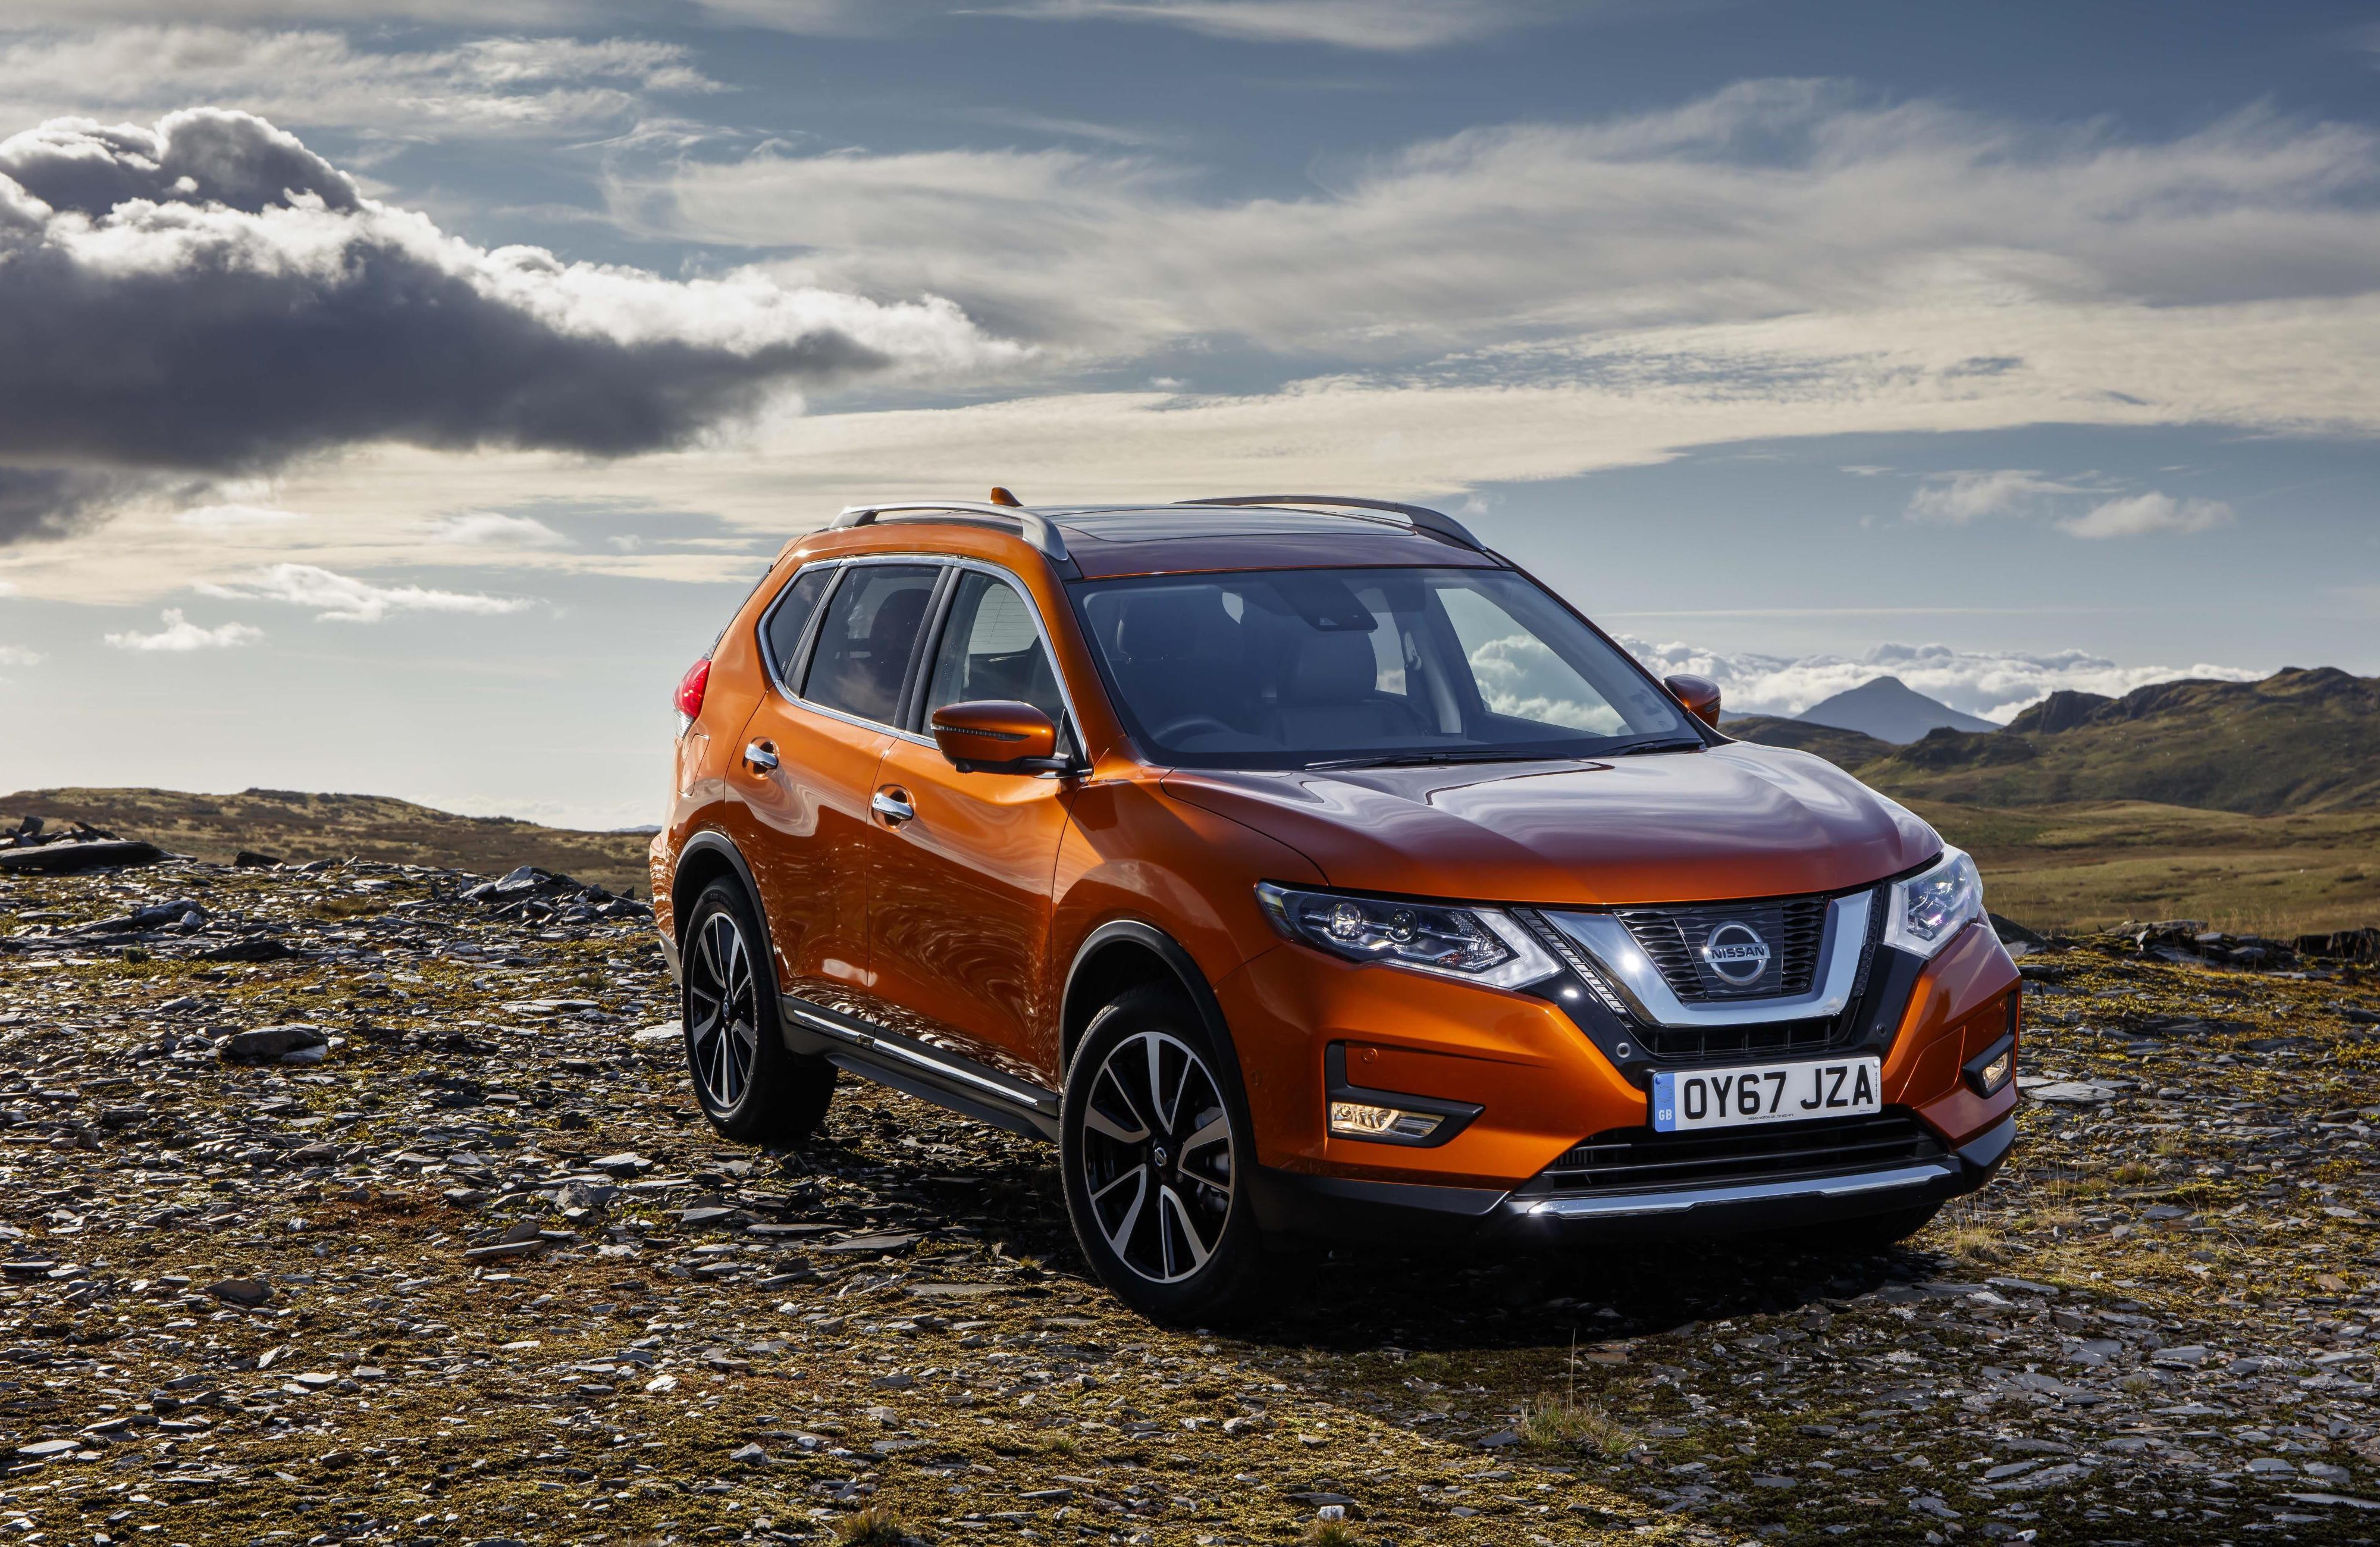 Amber Nissan X-Trail parked on a mountain range.